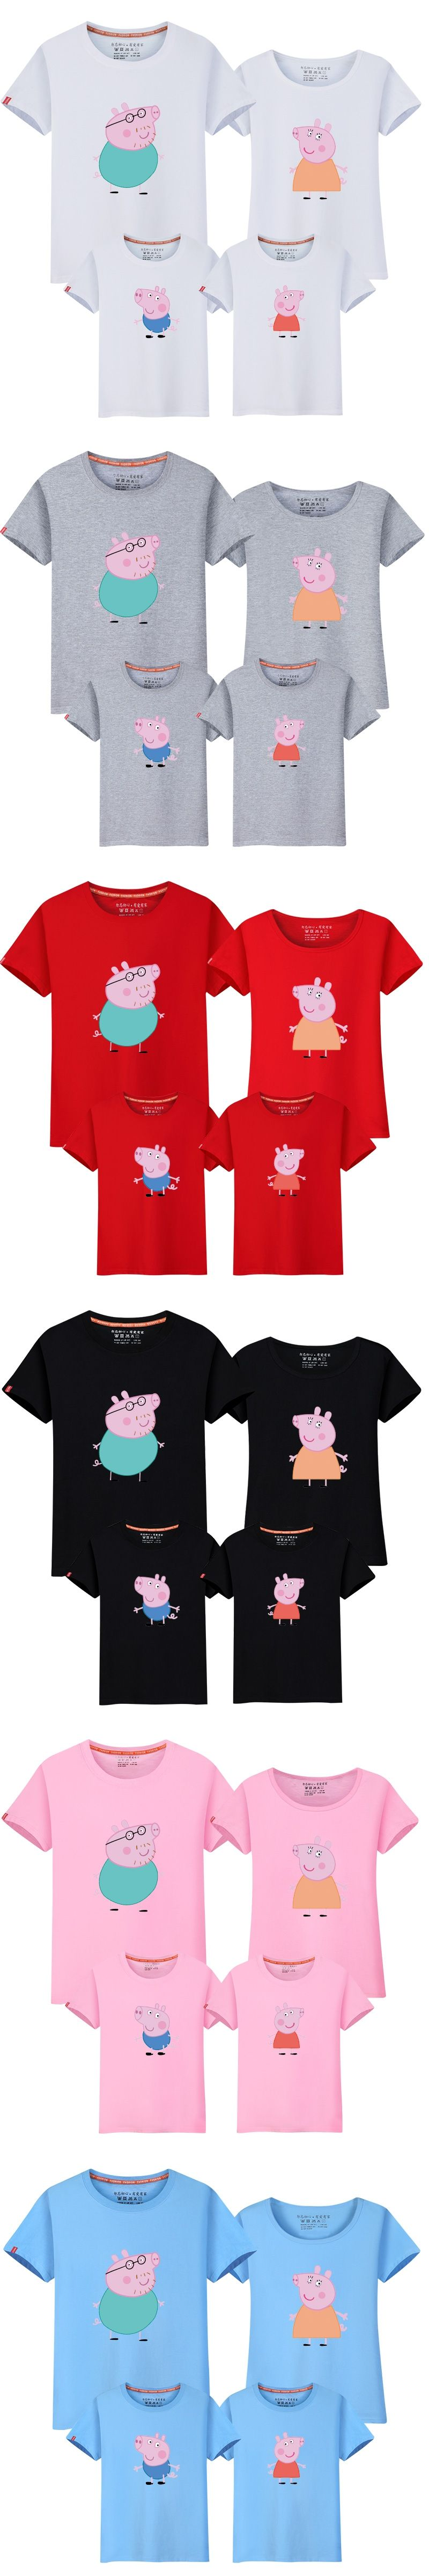 Casual Family Set O-neck Cartoon T shirt Cotton Family Clothing ...